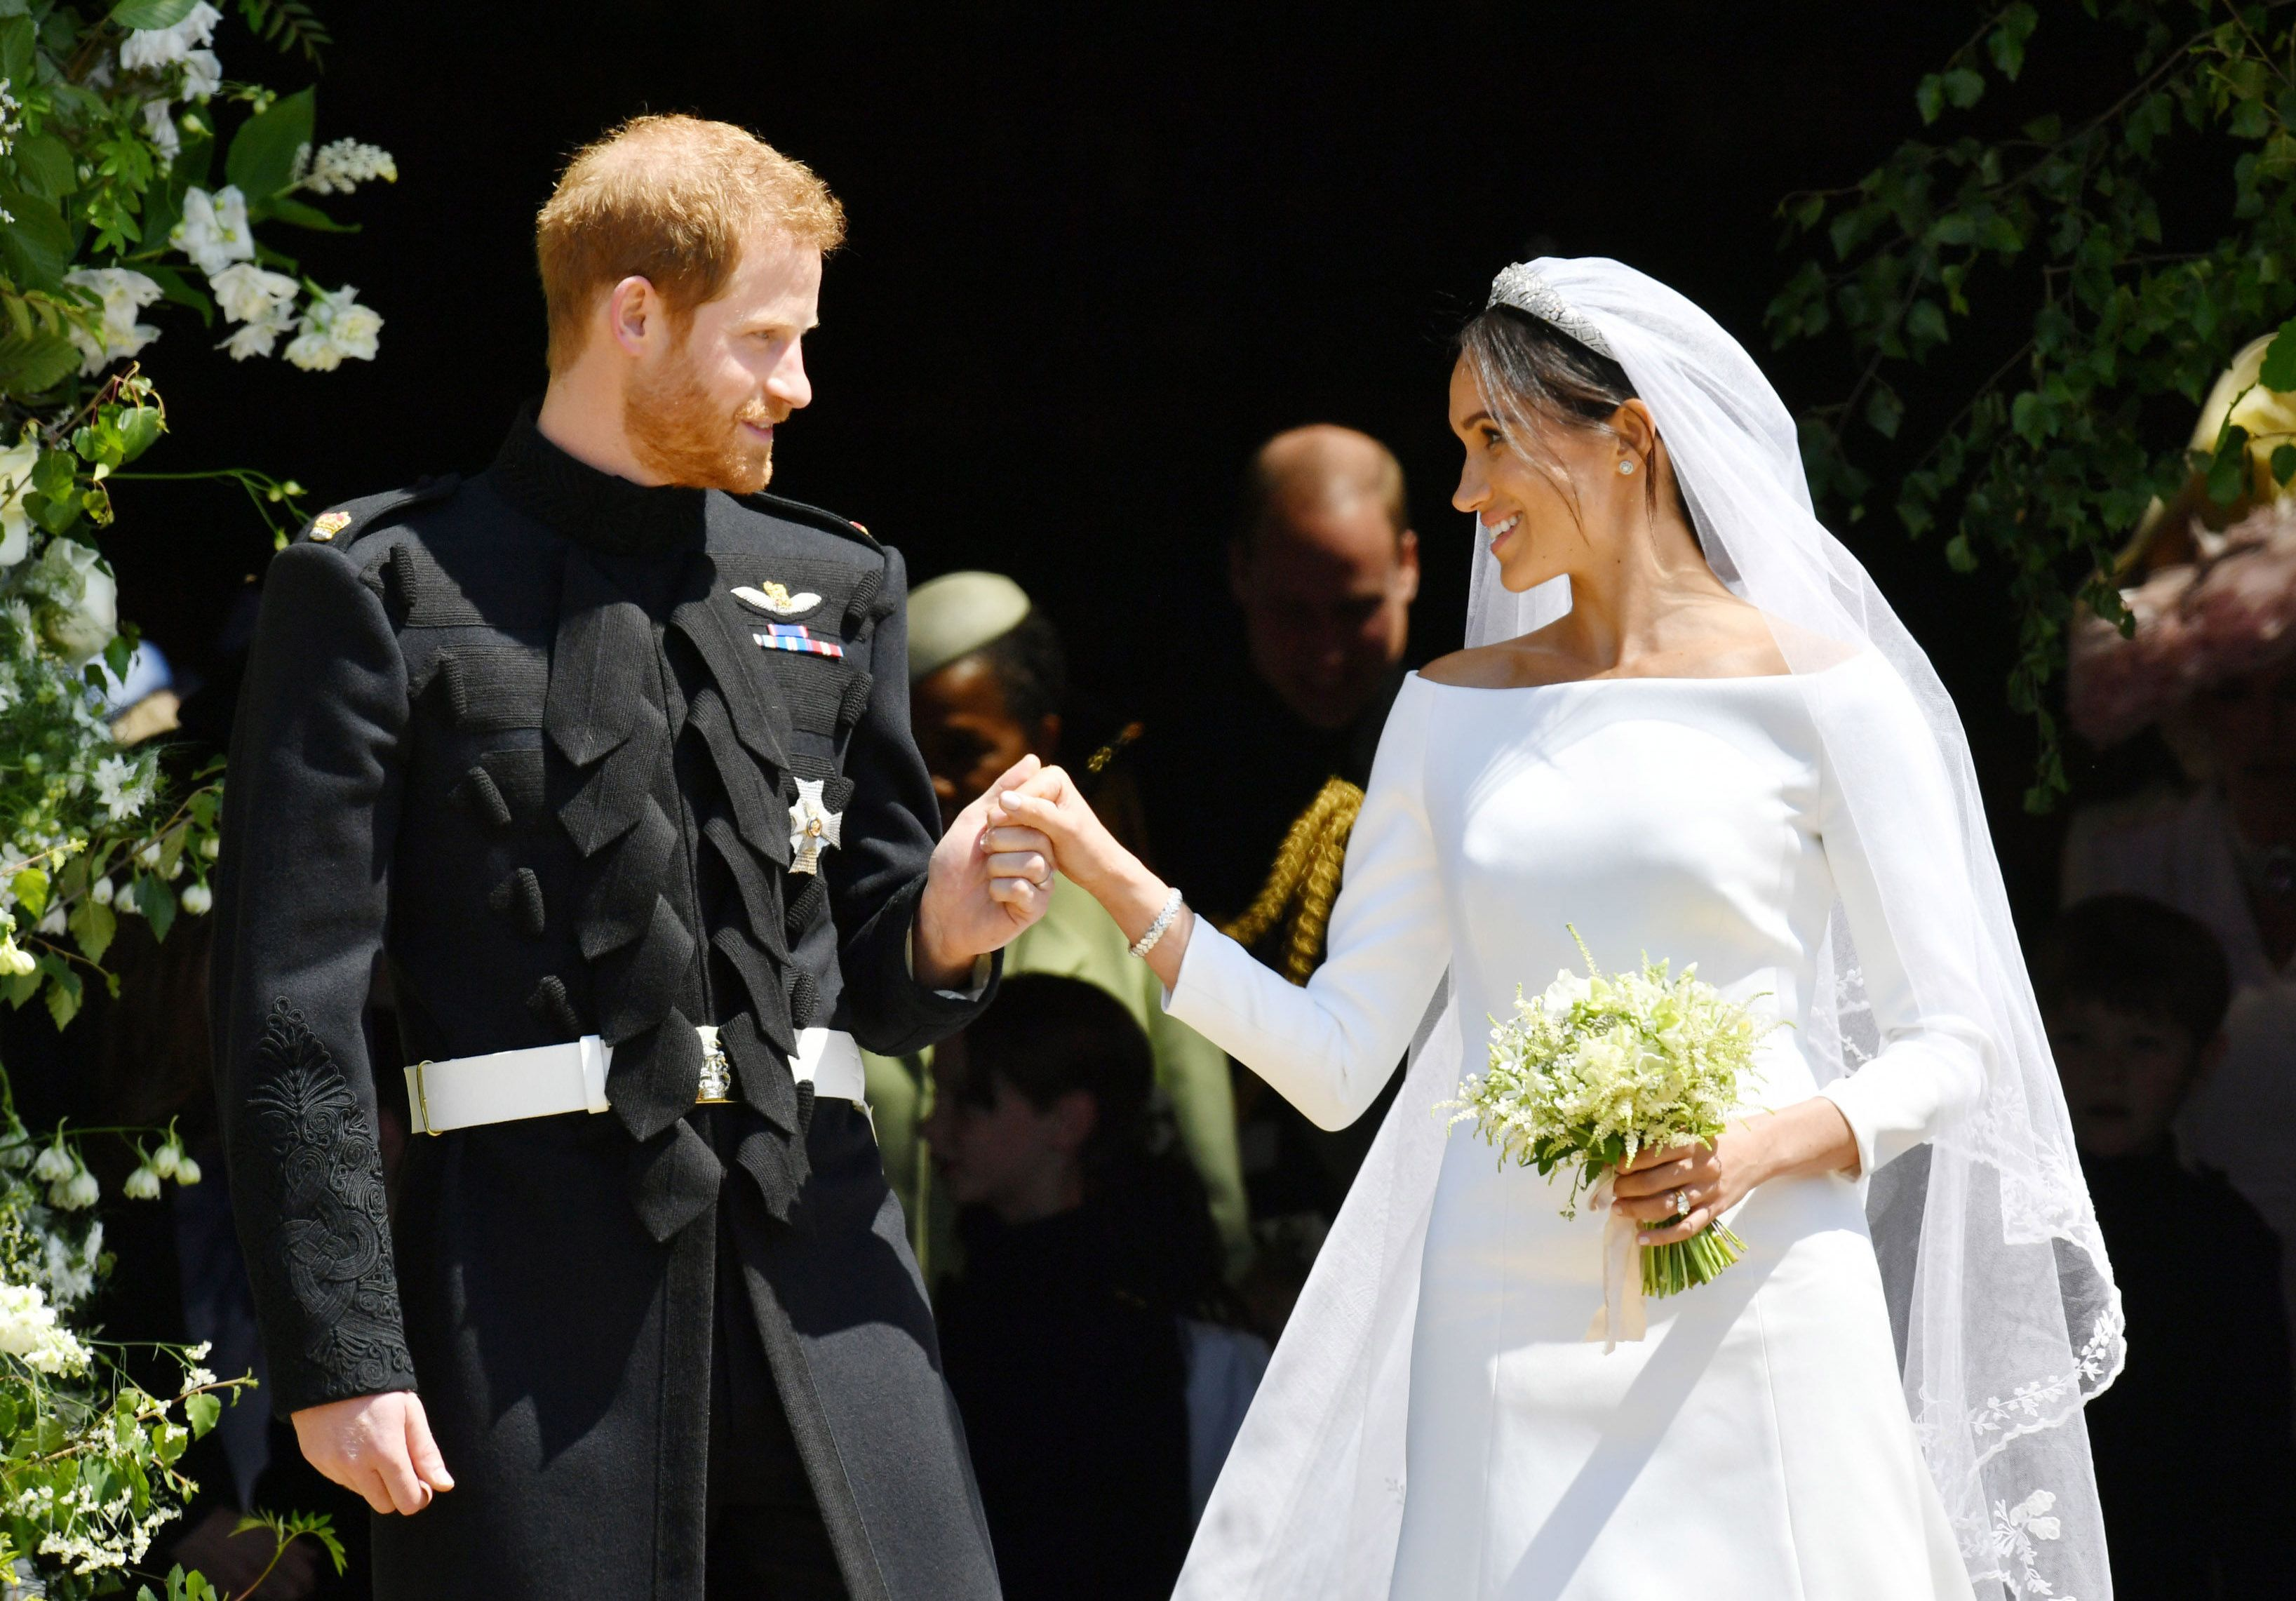 royal wedding cost meghan markle prince harry wedding cost 45 million meghan markle prince harry wedding cost